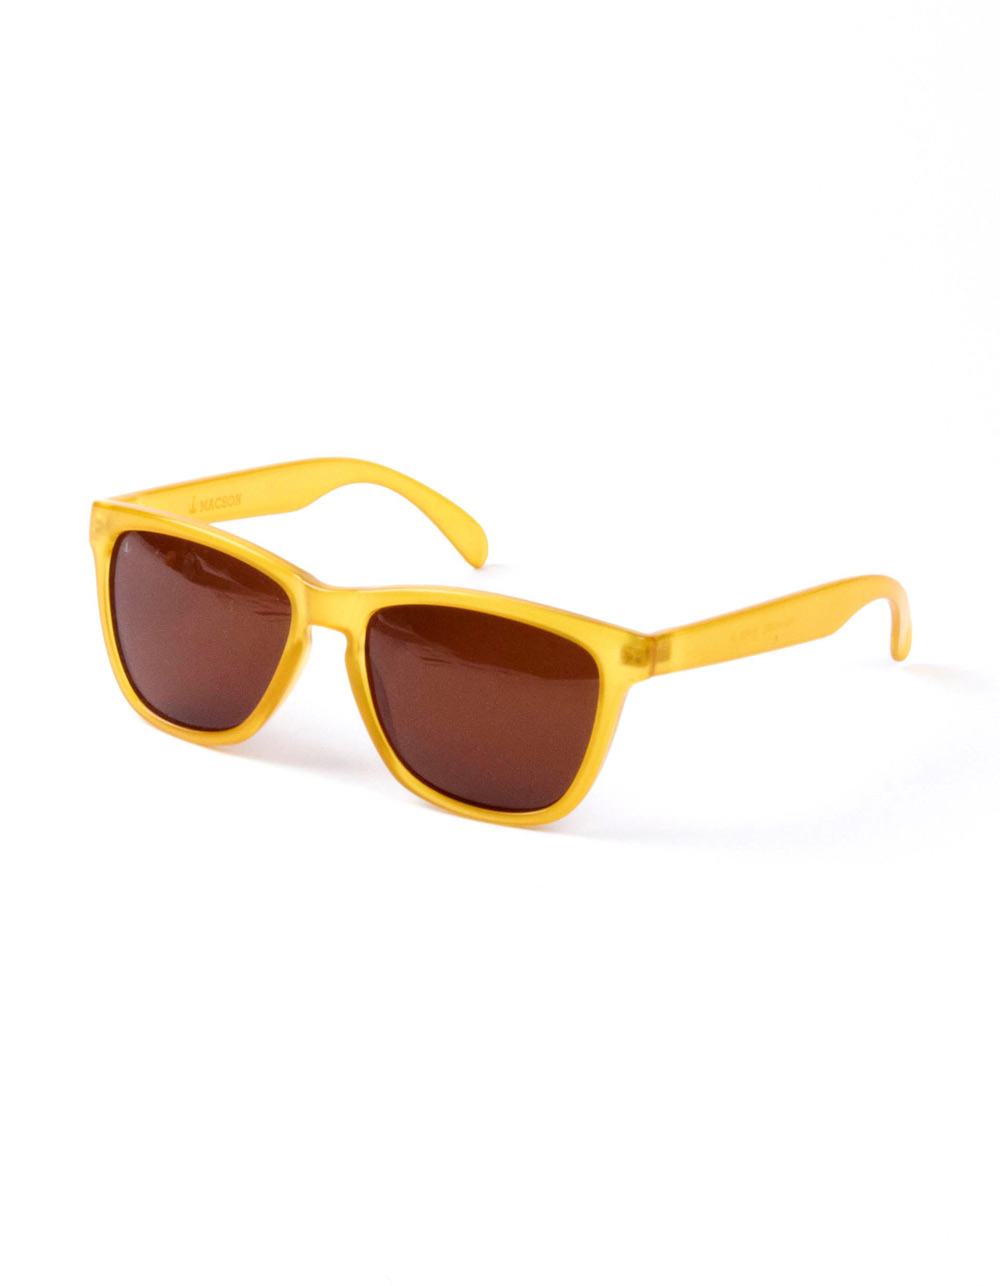 Sunglasses retro yellow